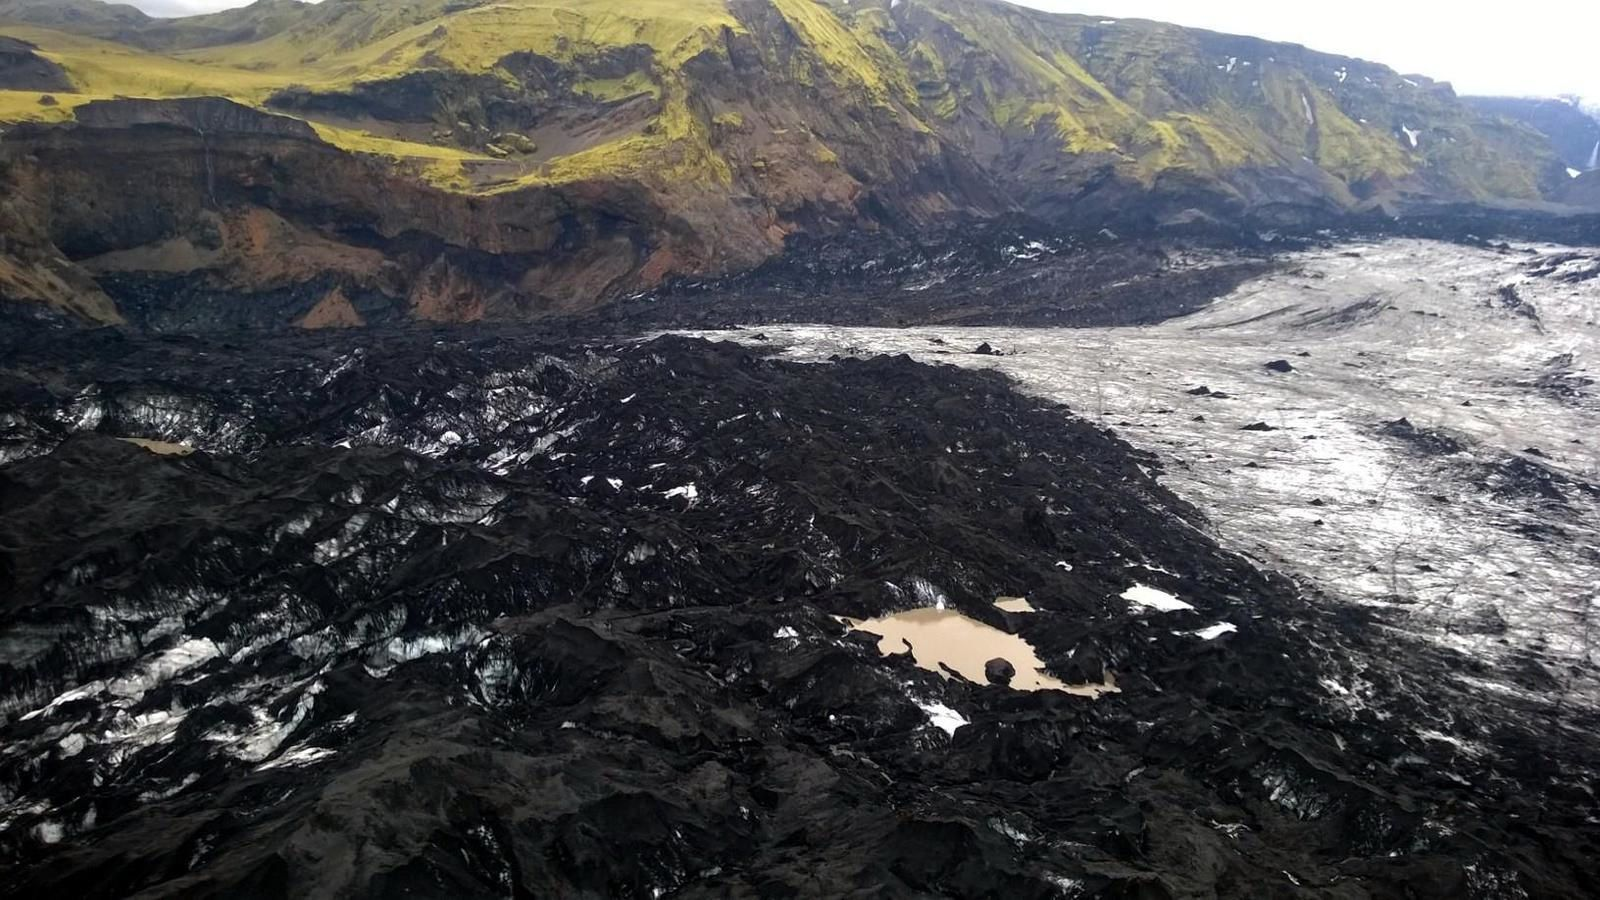 Significant glacial melt in Sólheimajökull - aerial inspection by the Coast Guard and IMO - photo Landhelgisgæsla Íslands / Icelandic Coast Guard.